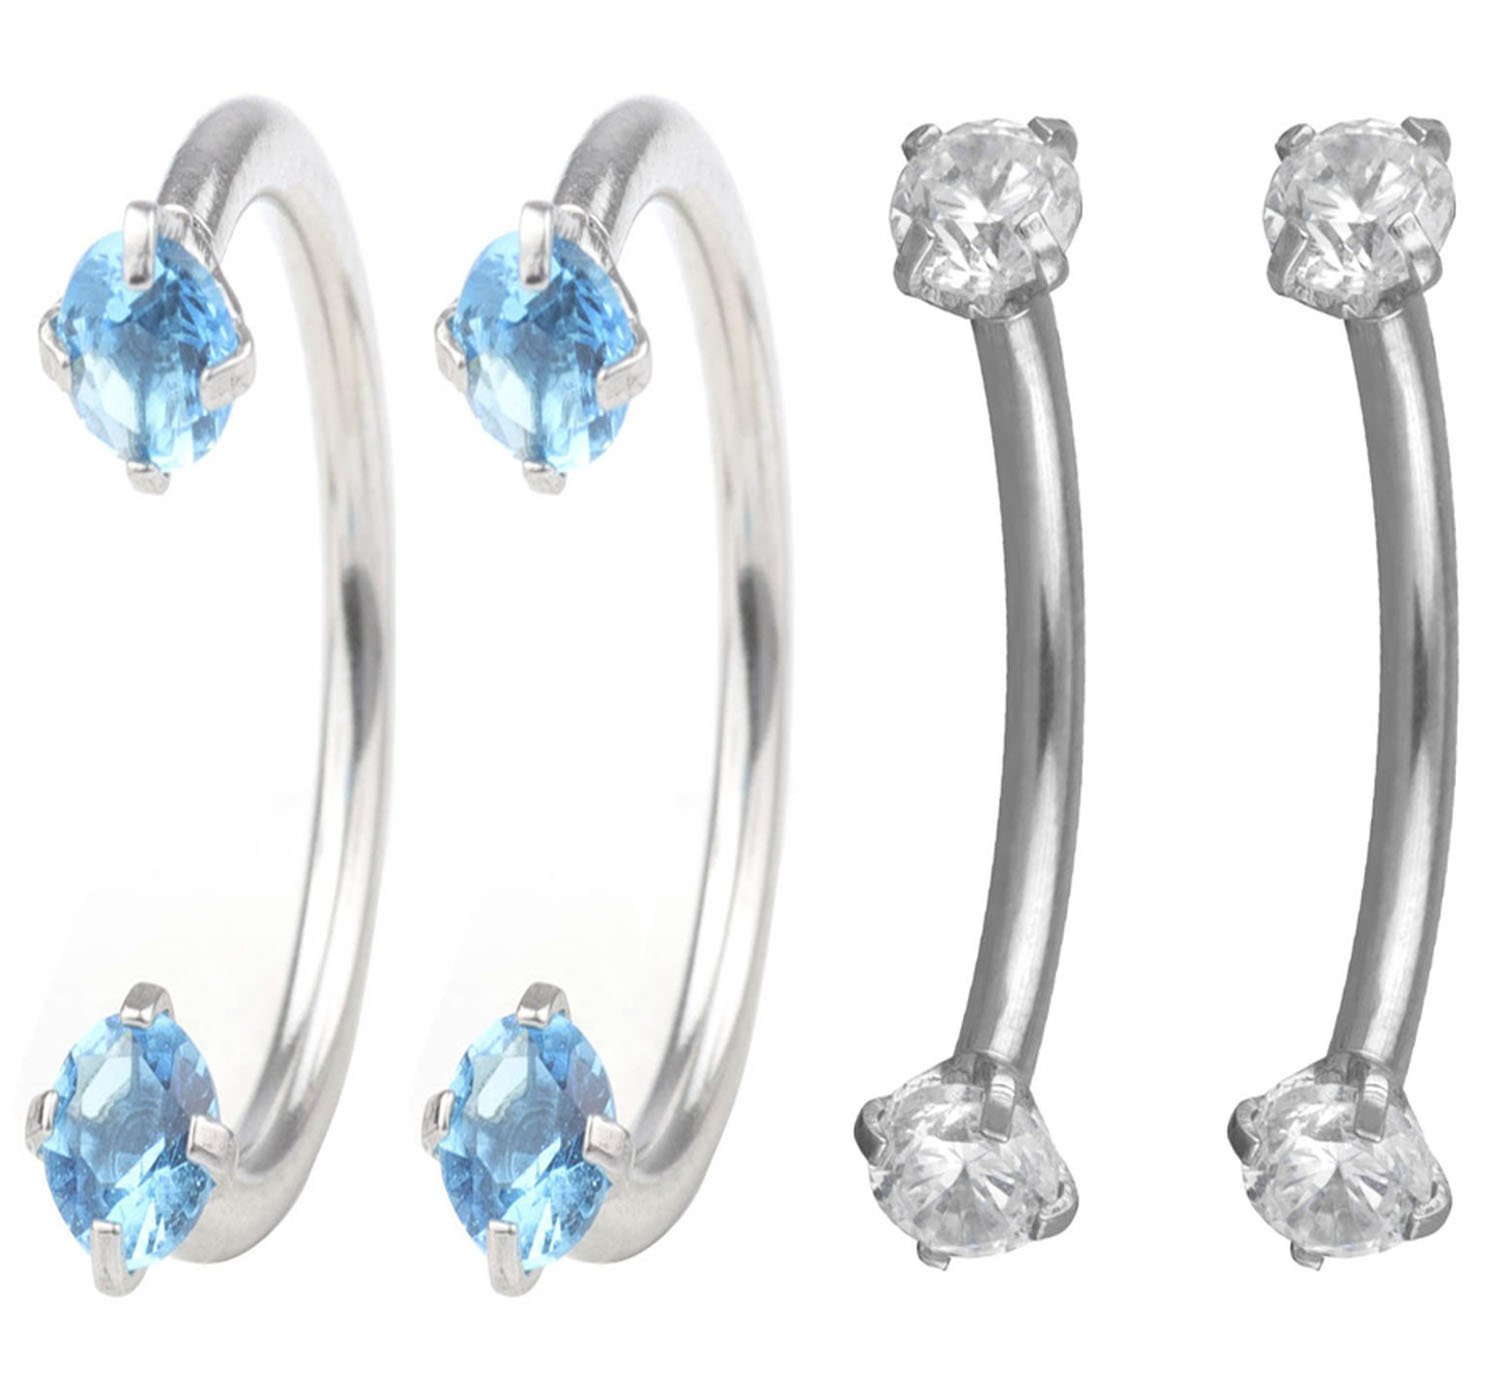 FB 16G 10mm Stainless Steel Cubic Zirconia Gem Internally Thread Curved Barbell Eyebrow Nose Ring Piercing Jewelry.